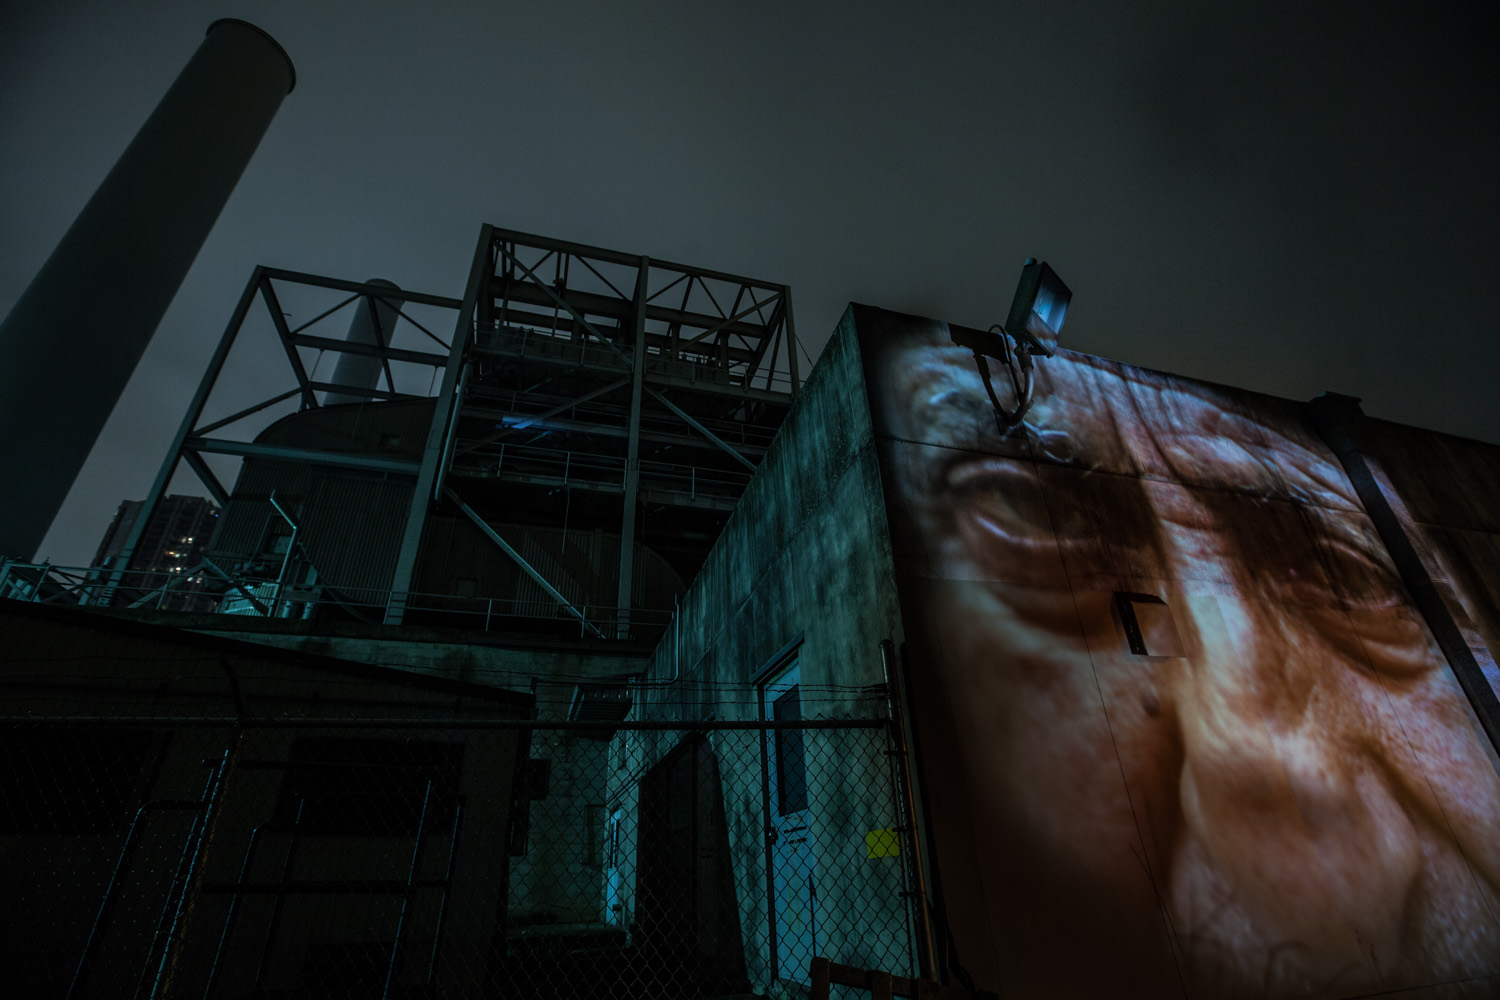 The Enemies Project, Chapter 3: Harsh Paradise • Projection Installation